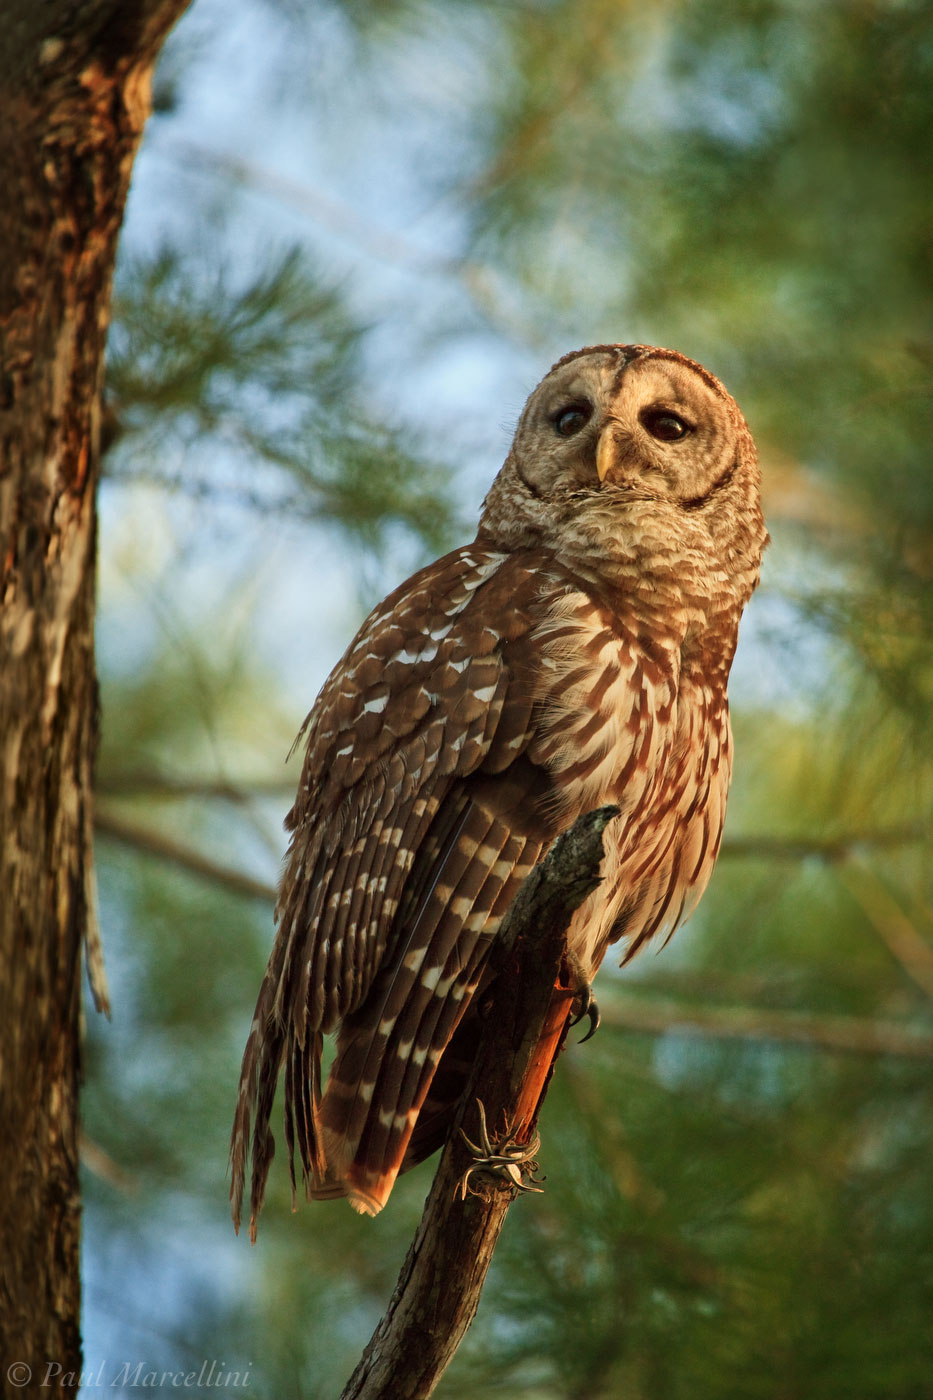 barred owl, strix varia, everglades national park, florida, photo